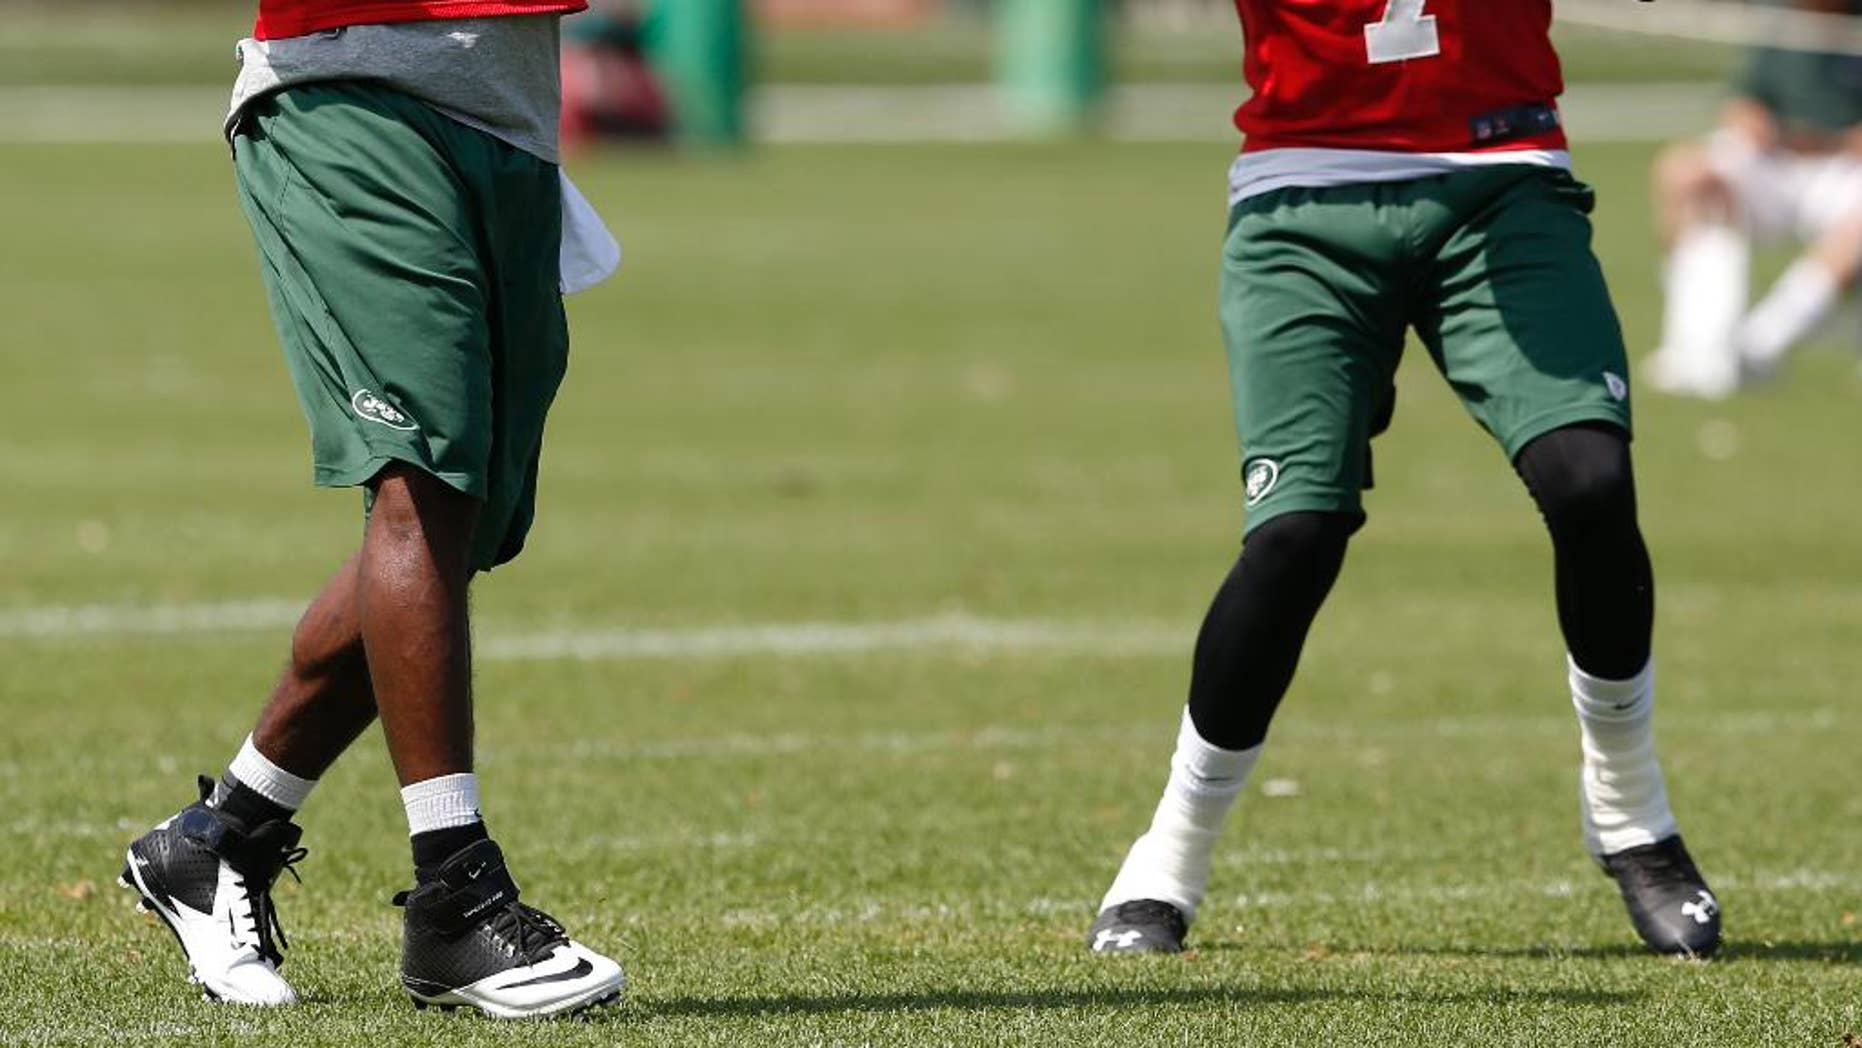 New York Jets quarterbacks Michael Vick, left, and Geno Smith work out during an NFL football organized team activity, Wednesday, June 4, 2014, in Florham Park, N.J. (AP Photo/Julio Cortez)